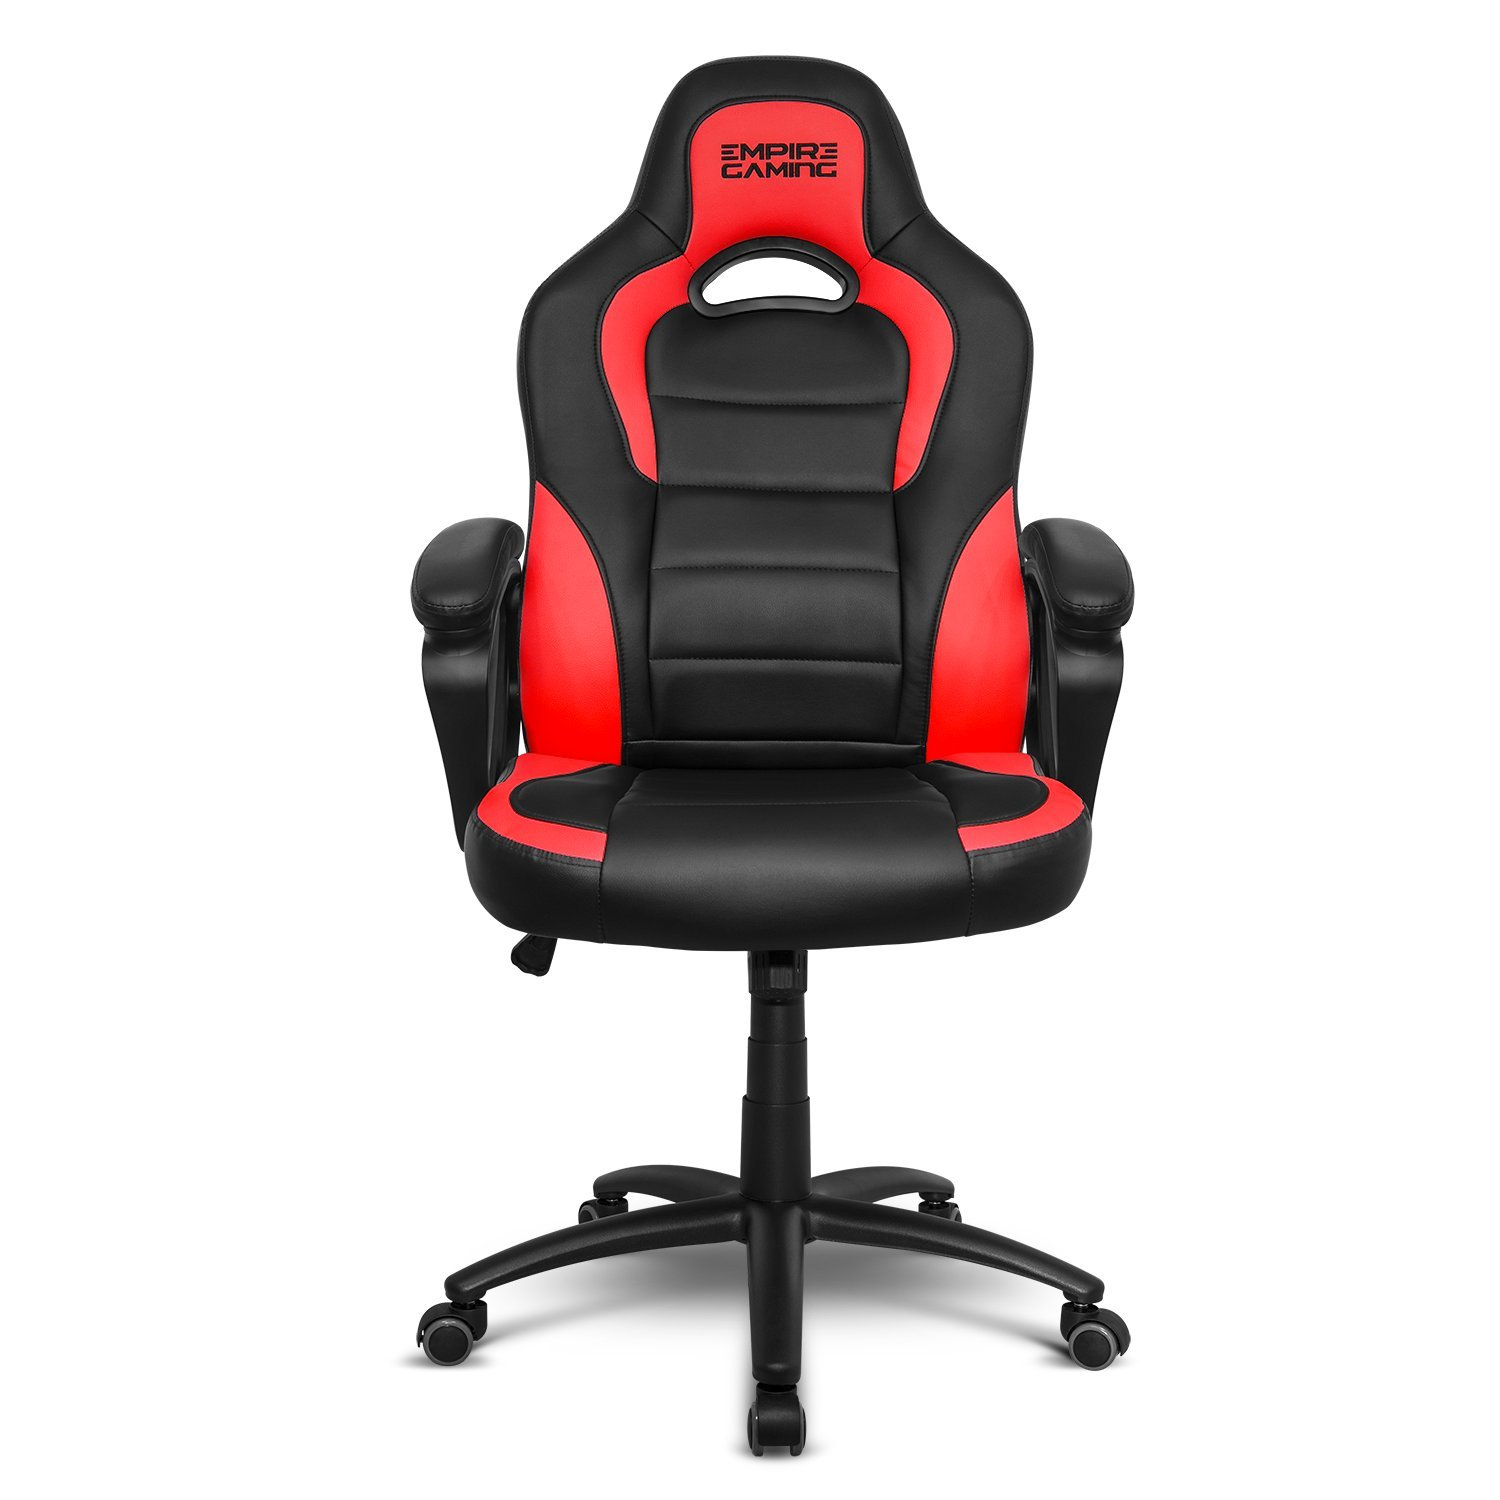 Empire Gaming - Sillón Gamer Racing 500 serieRoja - Reposabrazosultracómodos y mullidos: Amazon.es: Hogar